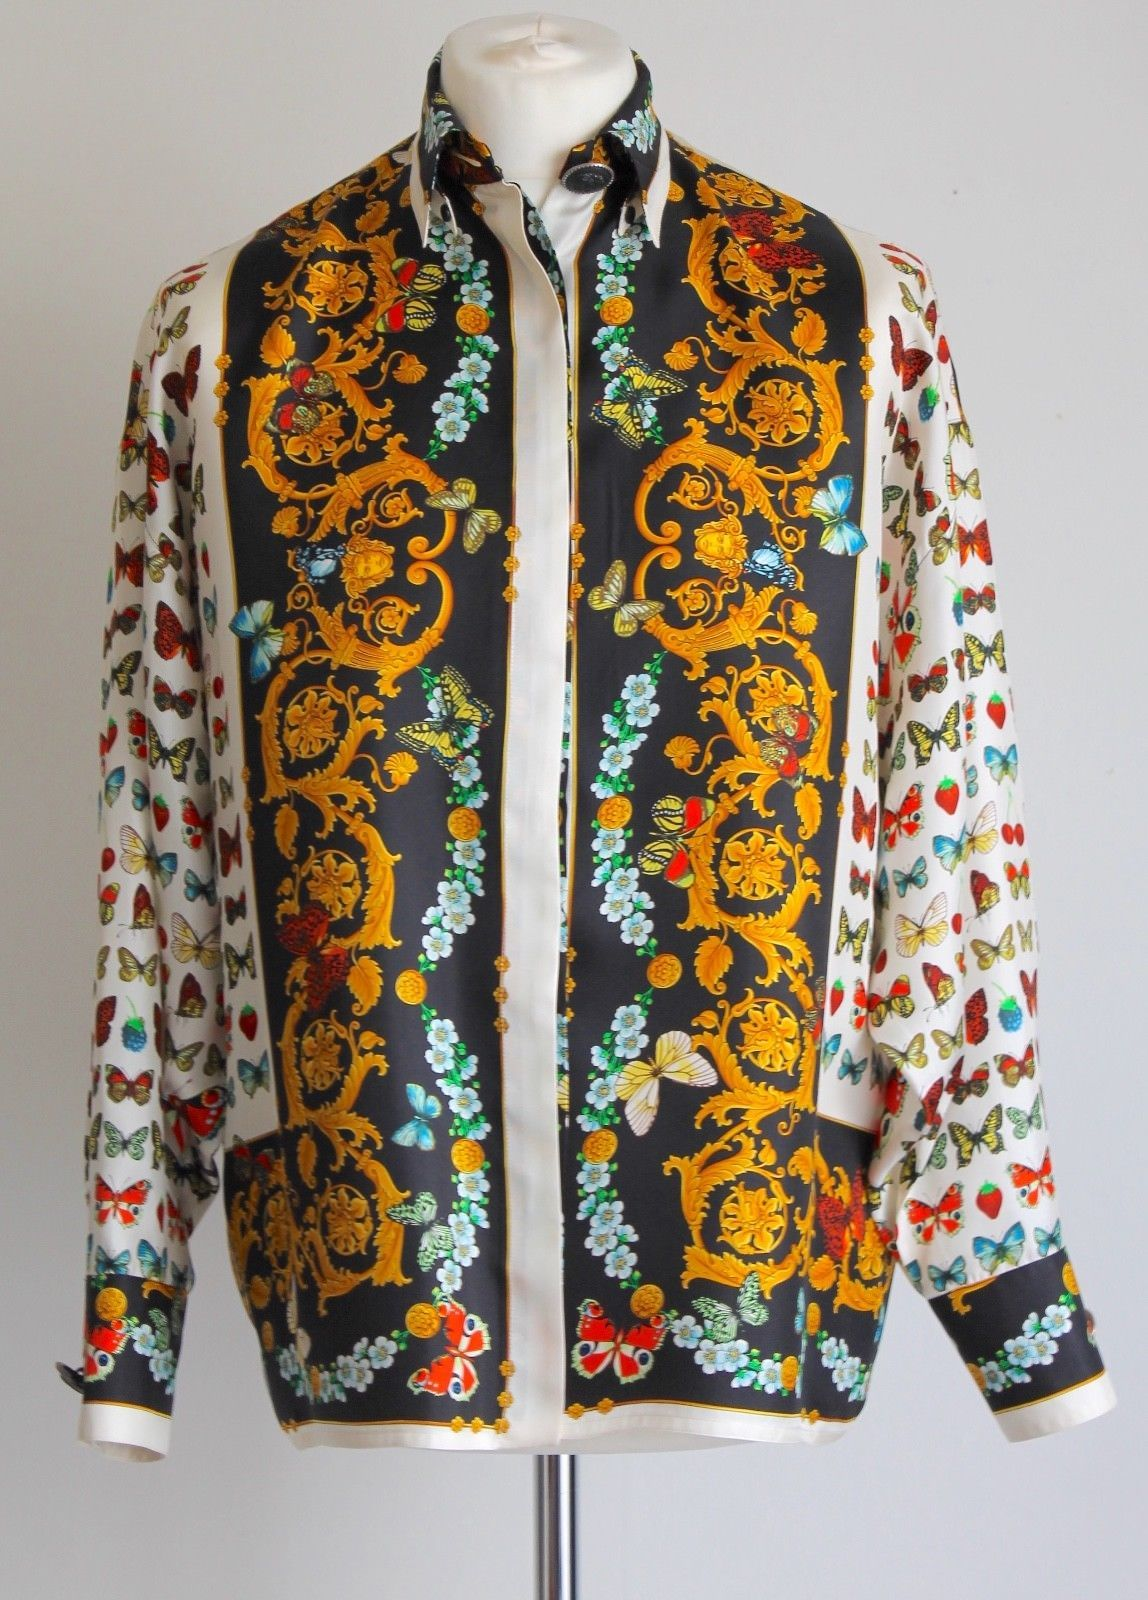 70e029c2 Versace Couture Silk Print 90's Shirt. Baroque, Medusa and Butterfly print.  Gorgeous! £1,200 BNIB